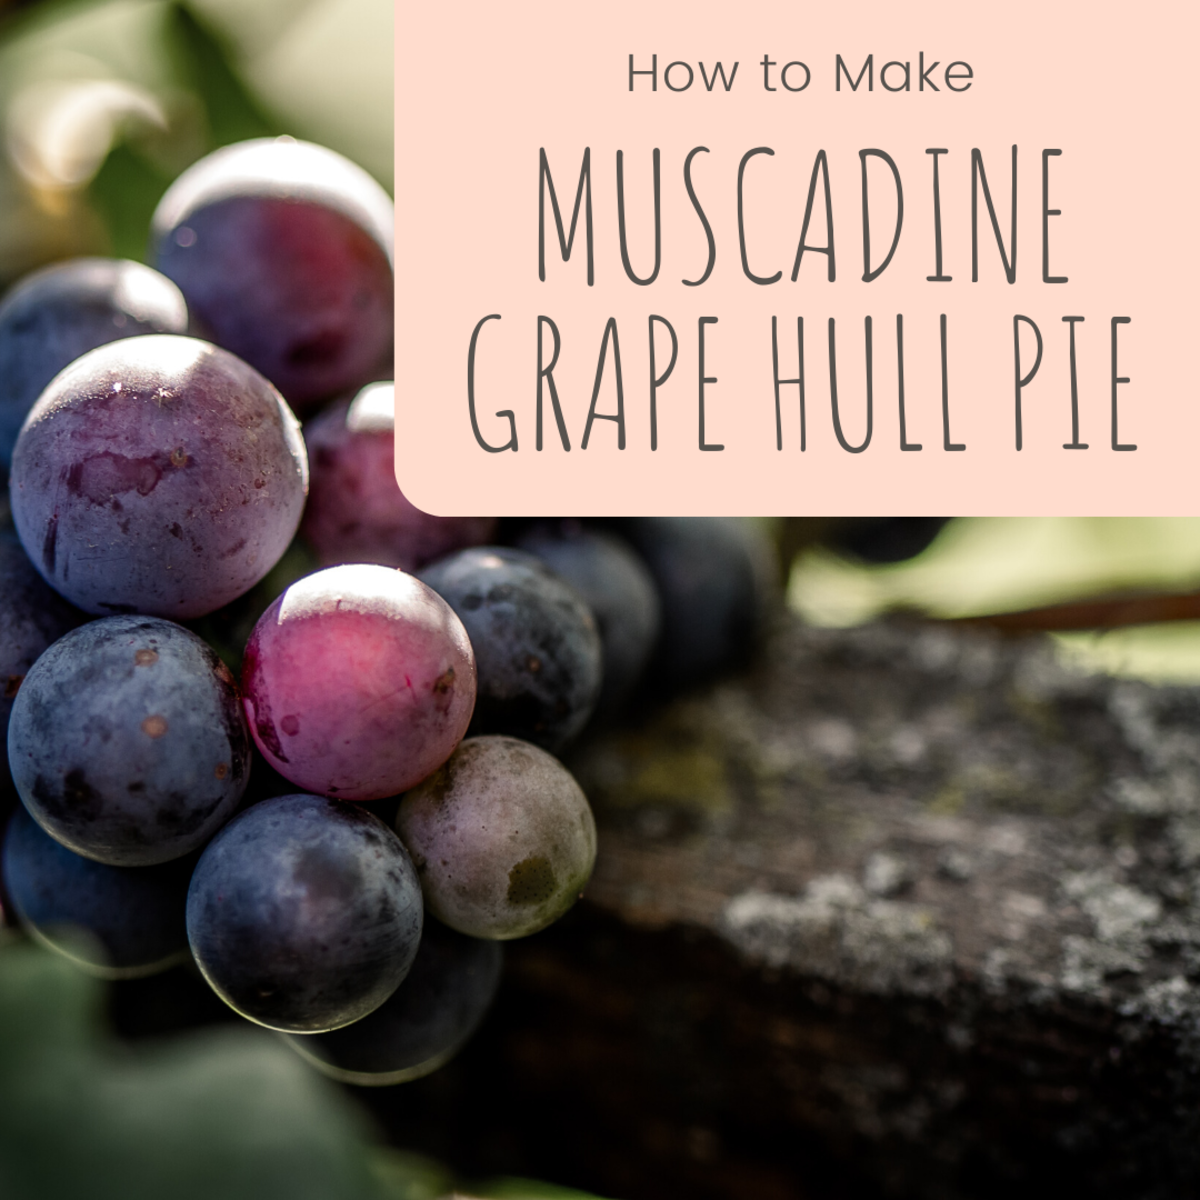 This muscadine pie is absolutely delicious!